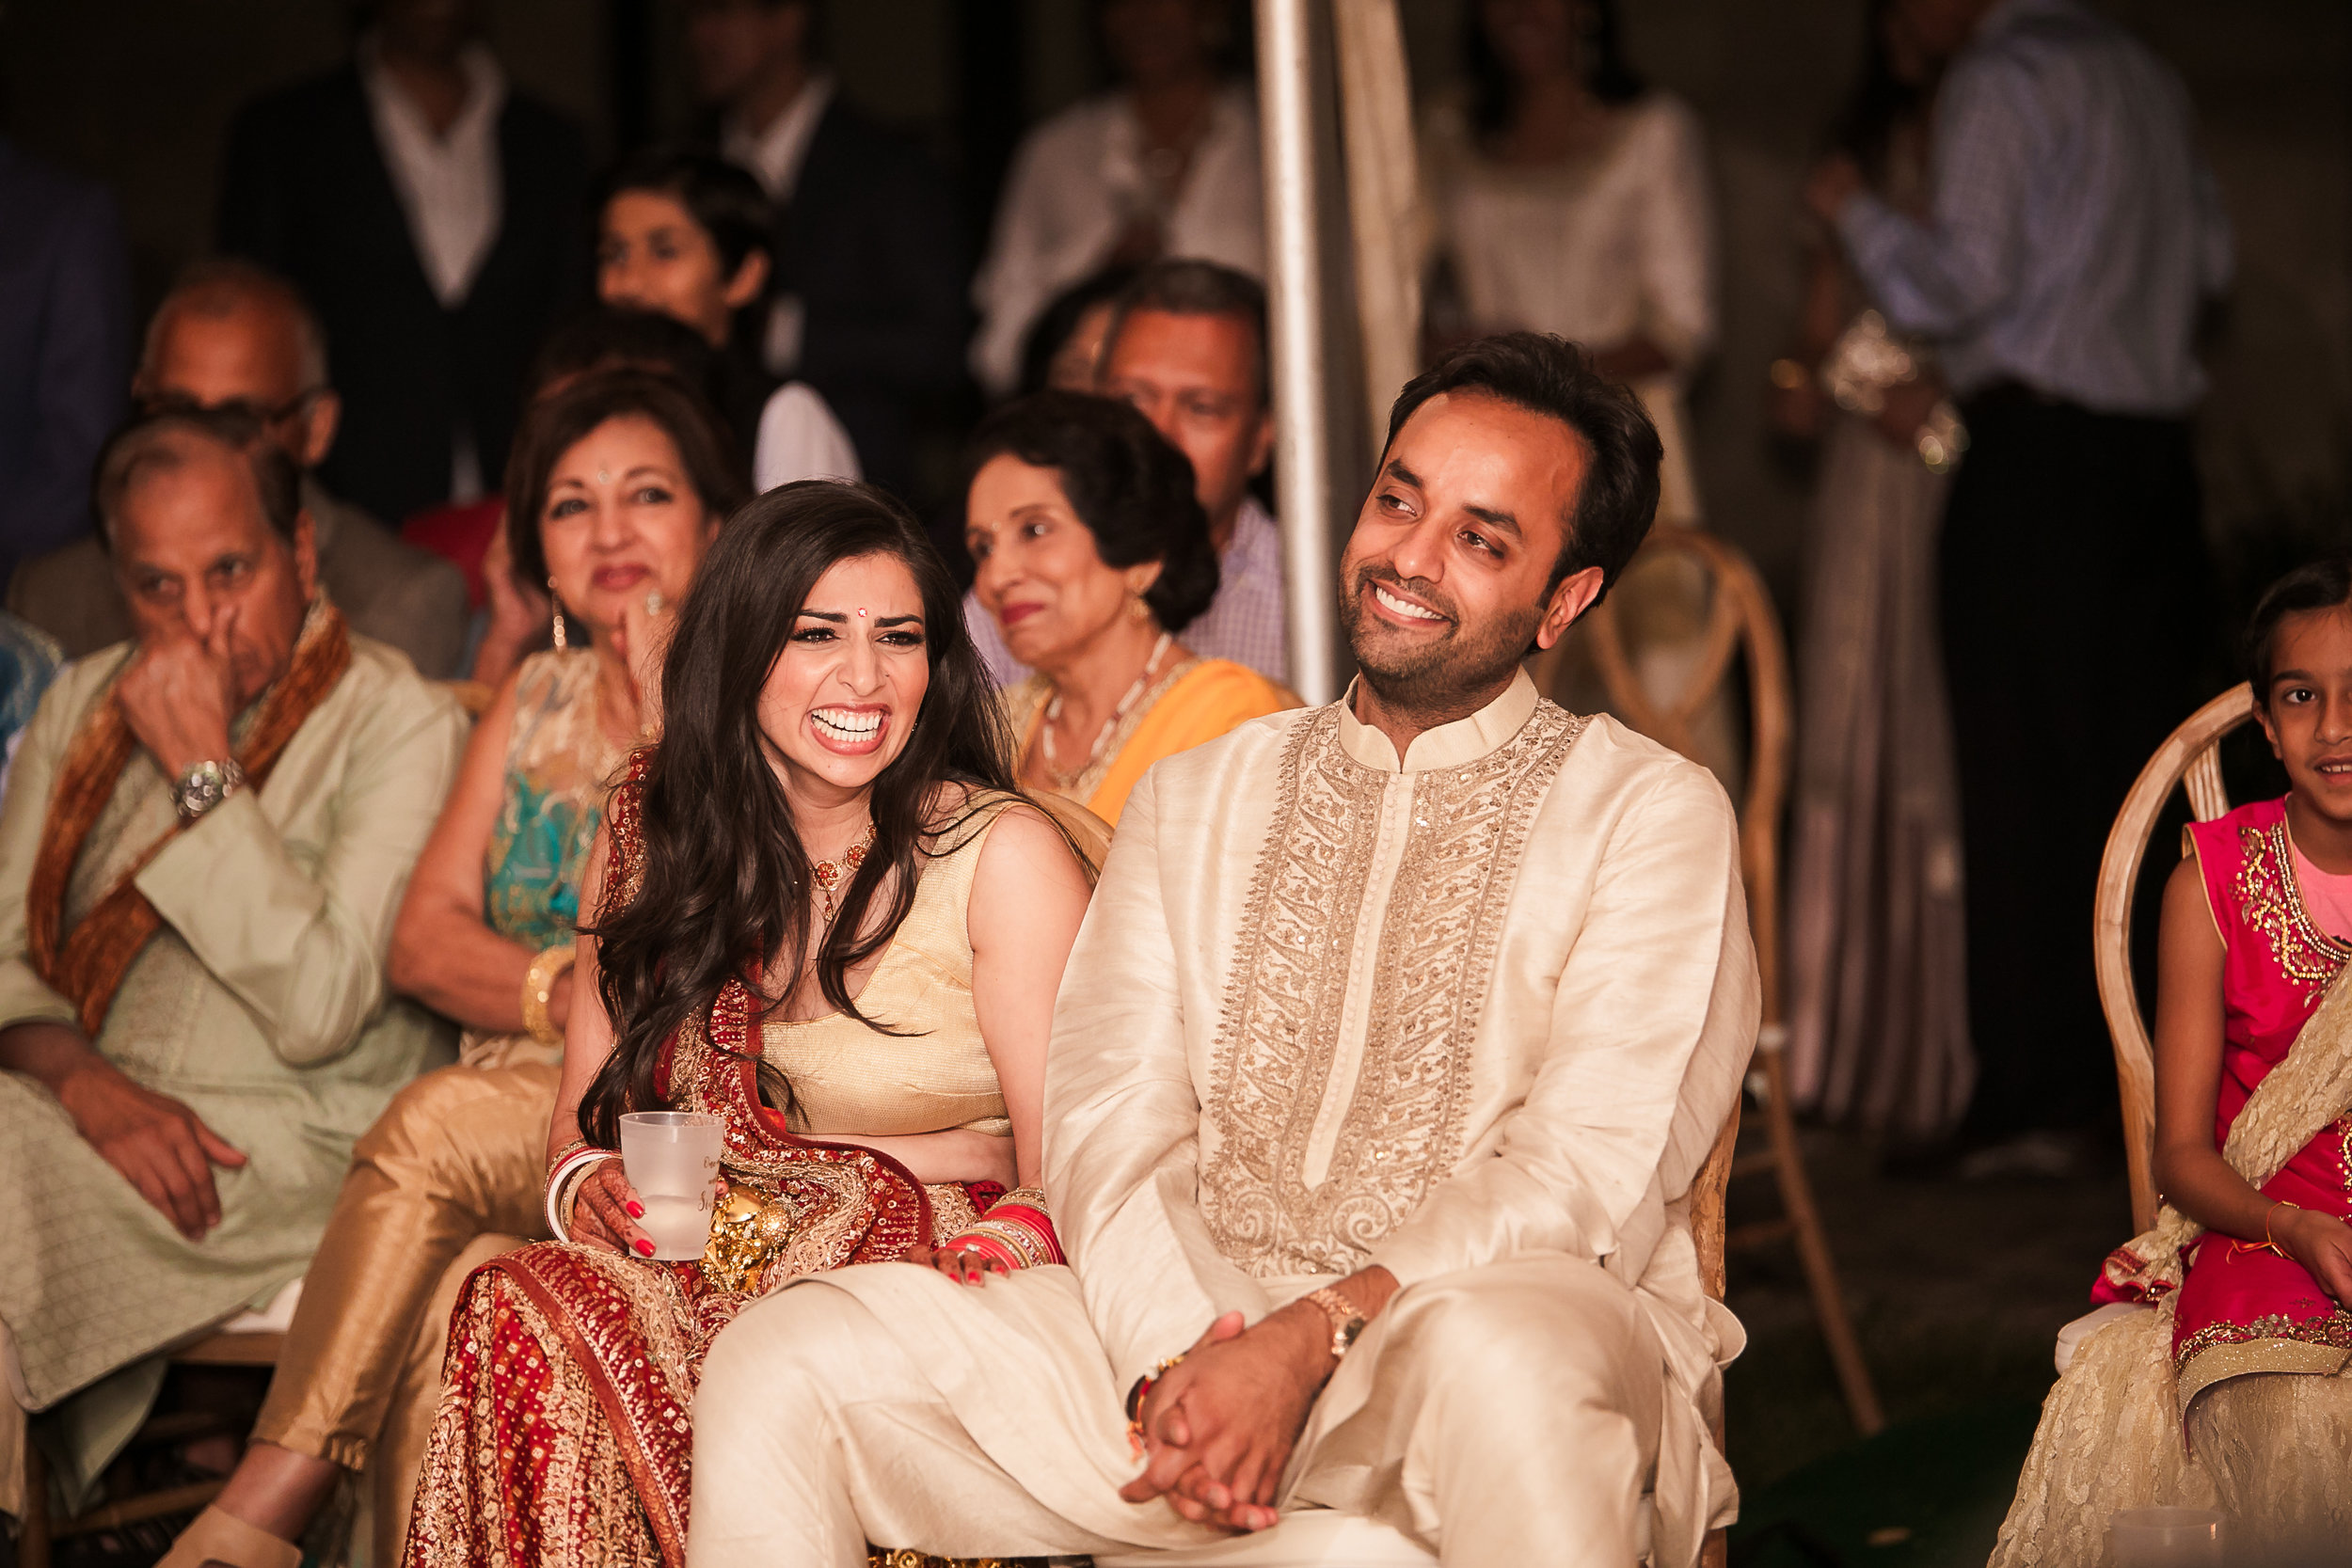 INDIAN WEDDING BRIDE AND GROOM SANGEET 2.jpg